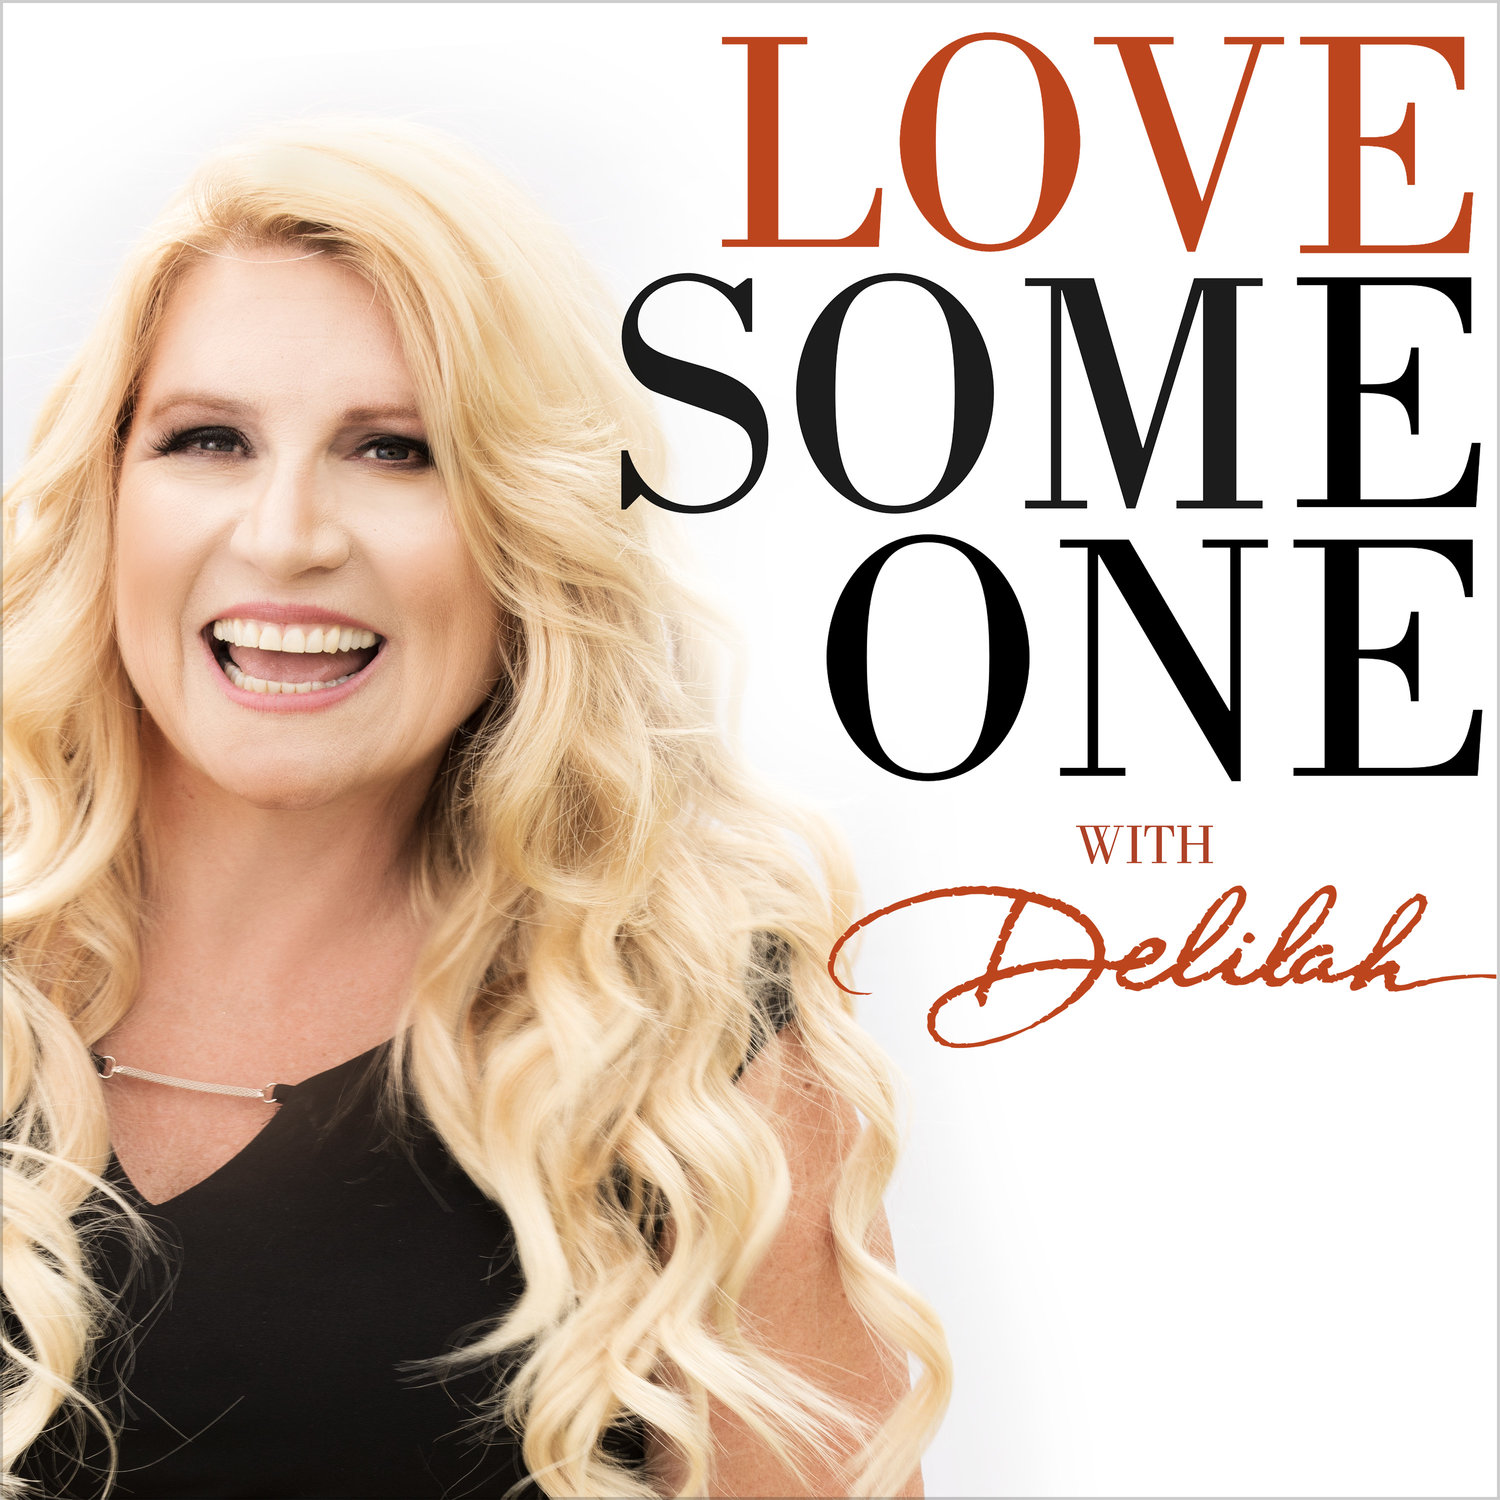 Nighttime radio host and book author, Delilah